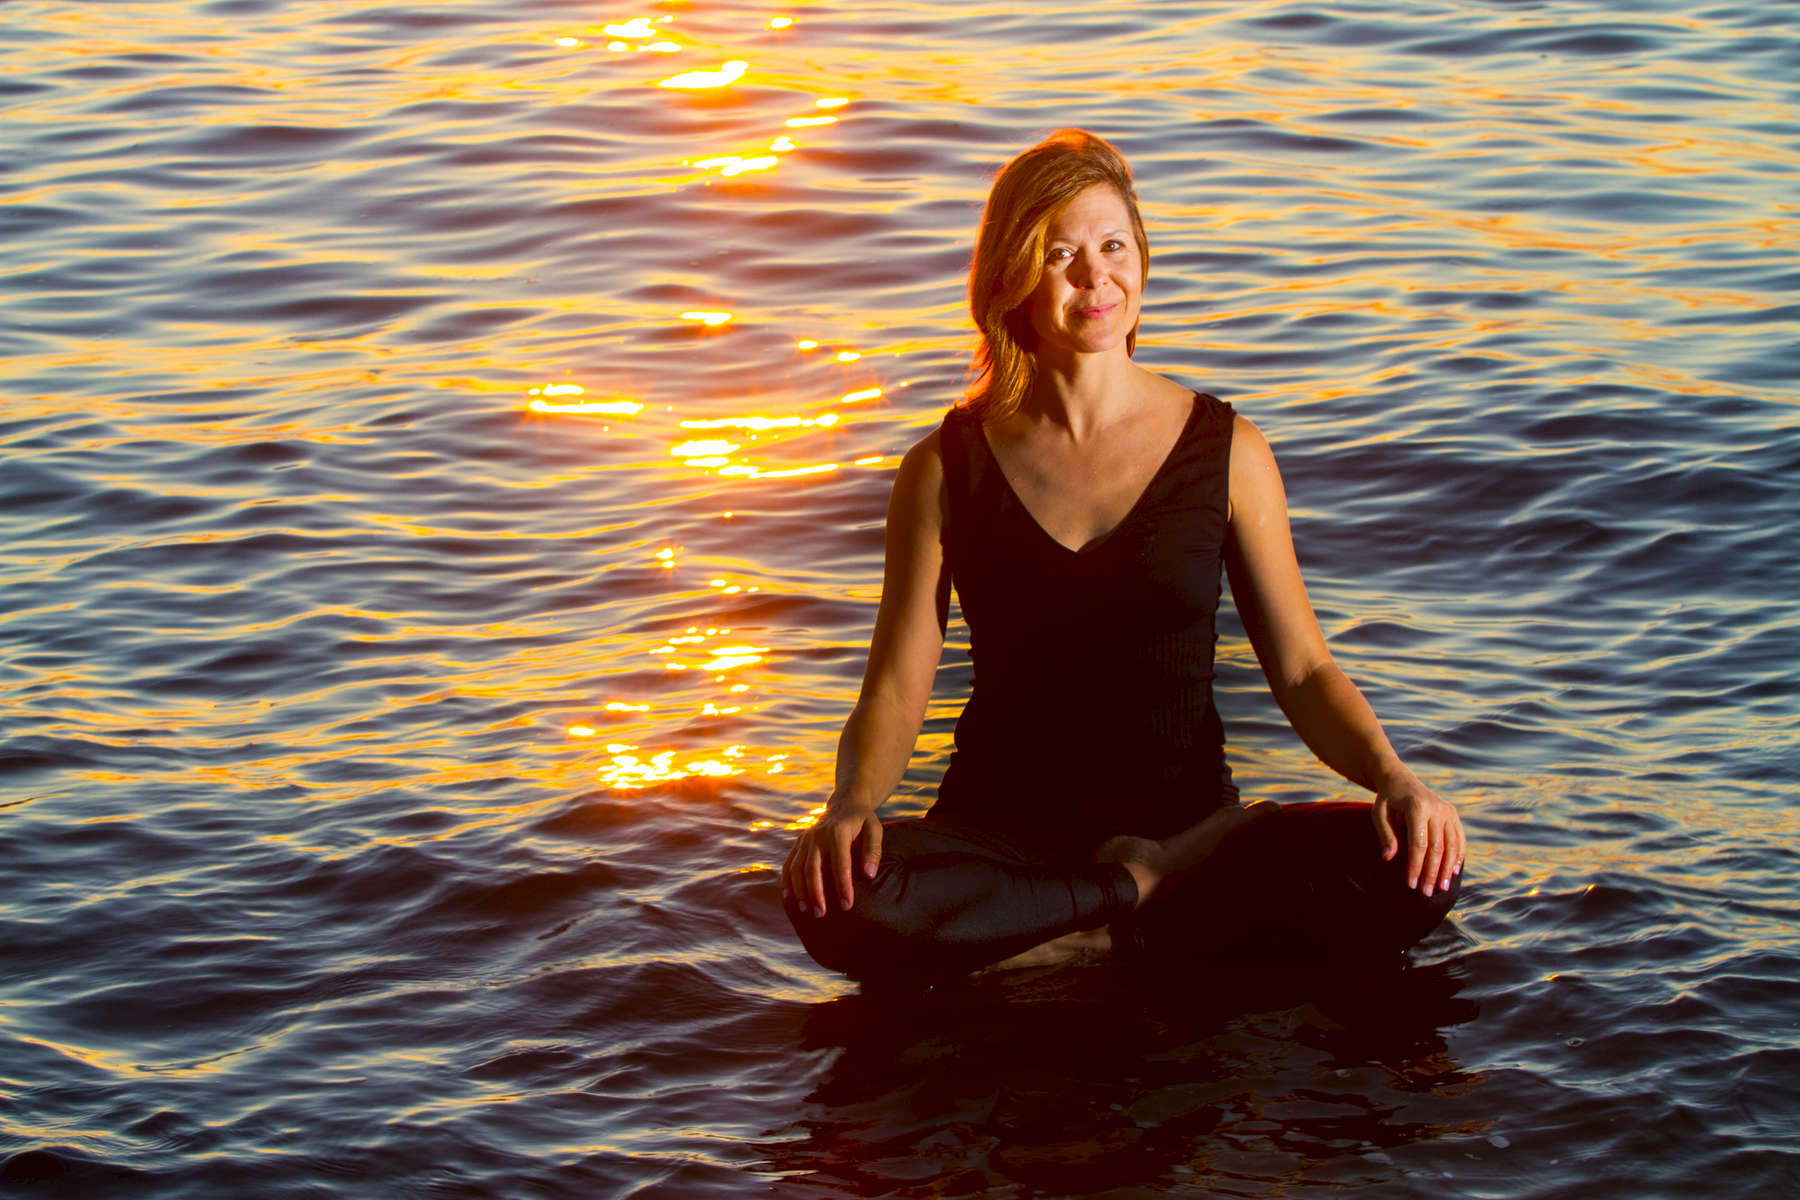 Angeline Johnston, yoga instructor and owner of Richmond Beach Yoga, poses at a beach in Edmonds, Wash. on July 31, 2015(photo © Karen Ducey)